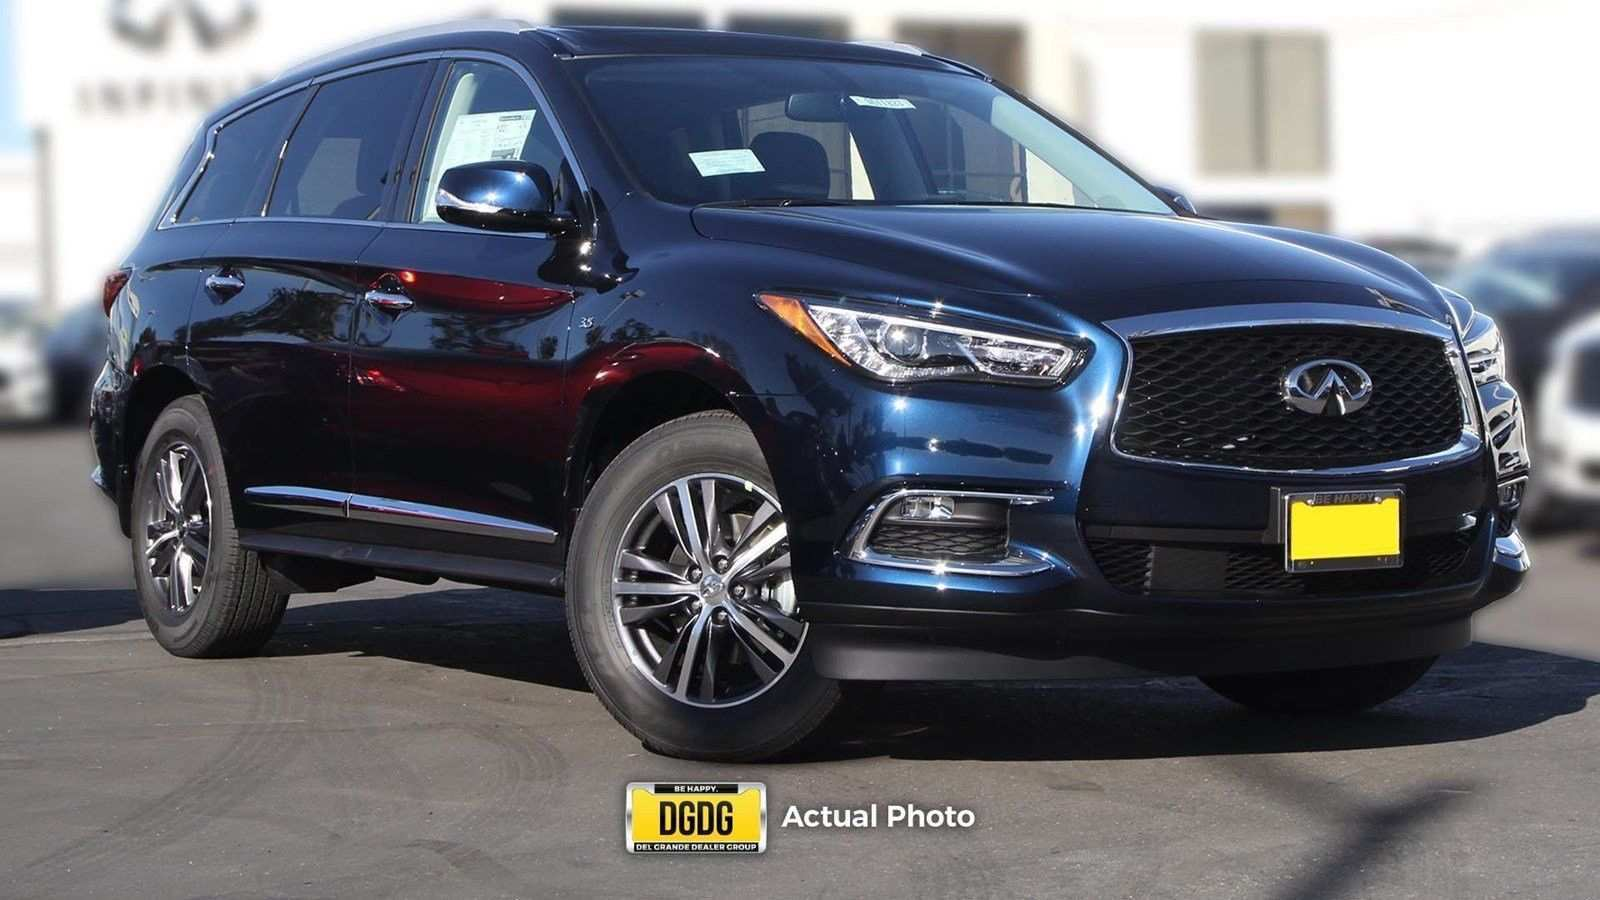 81 All New 2020 Infiniti Qx60 Hybrid Engine